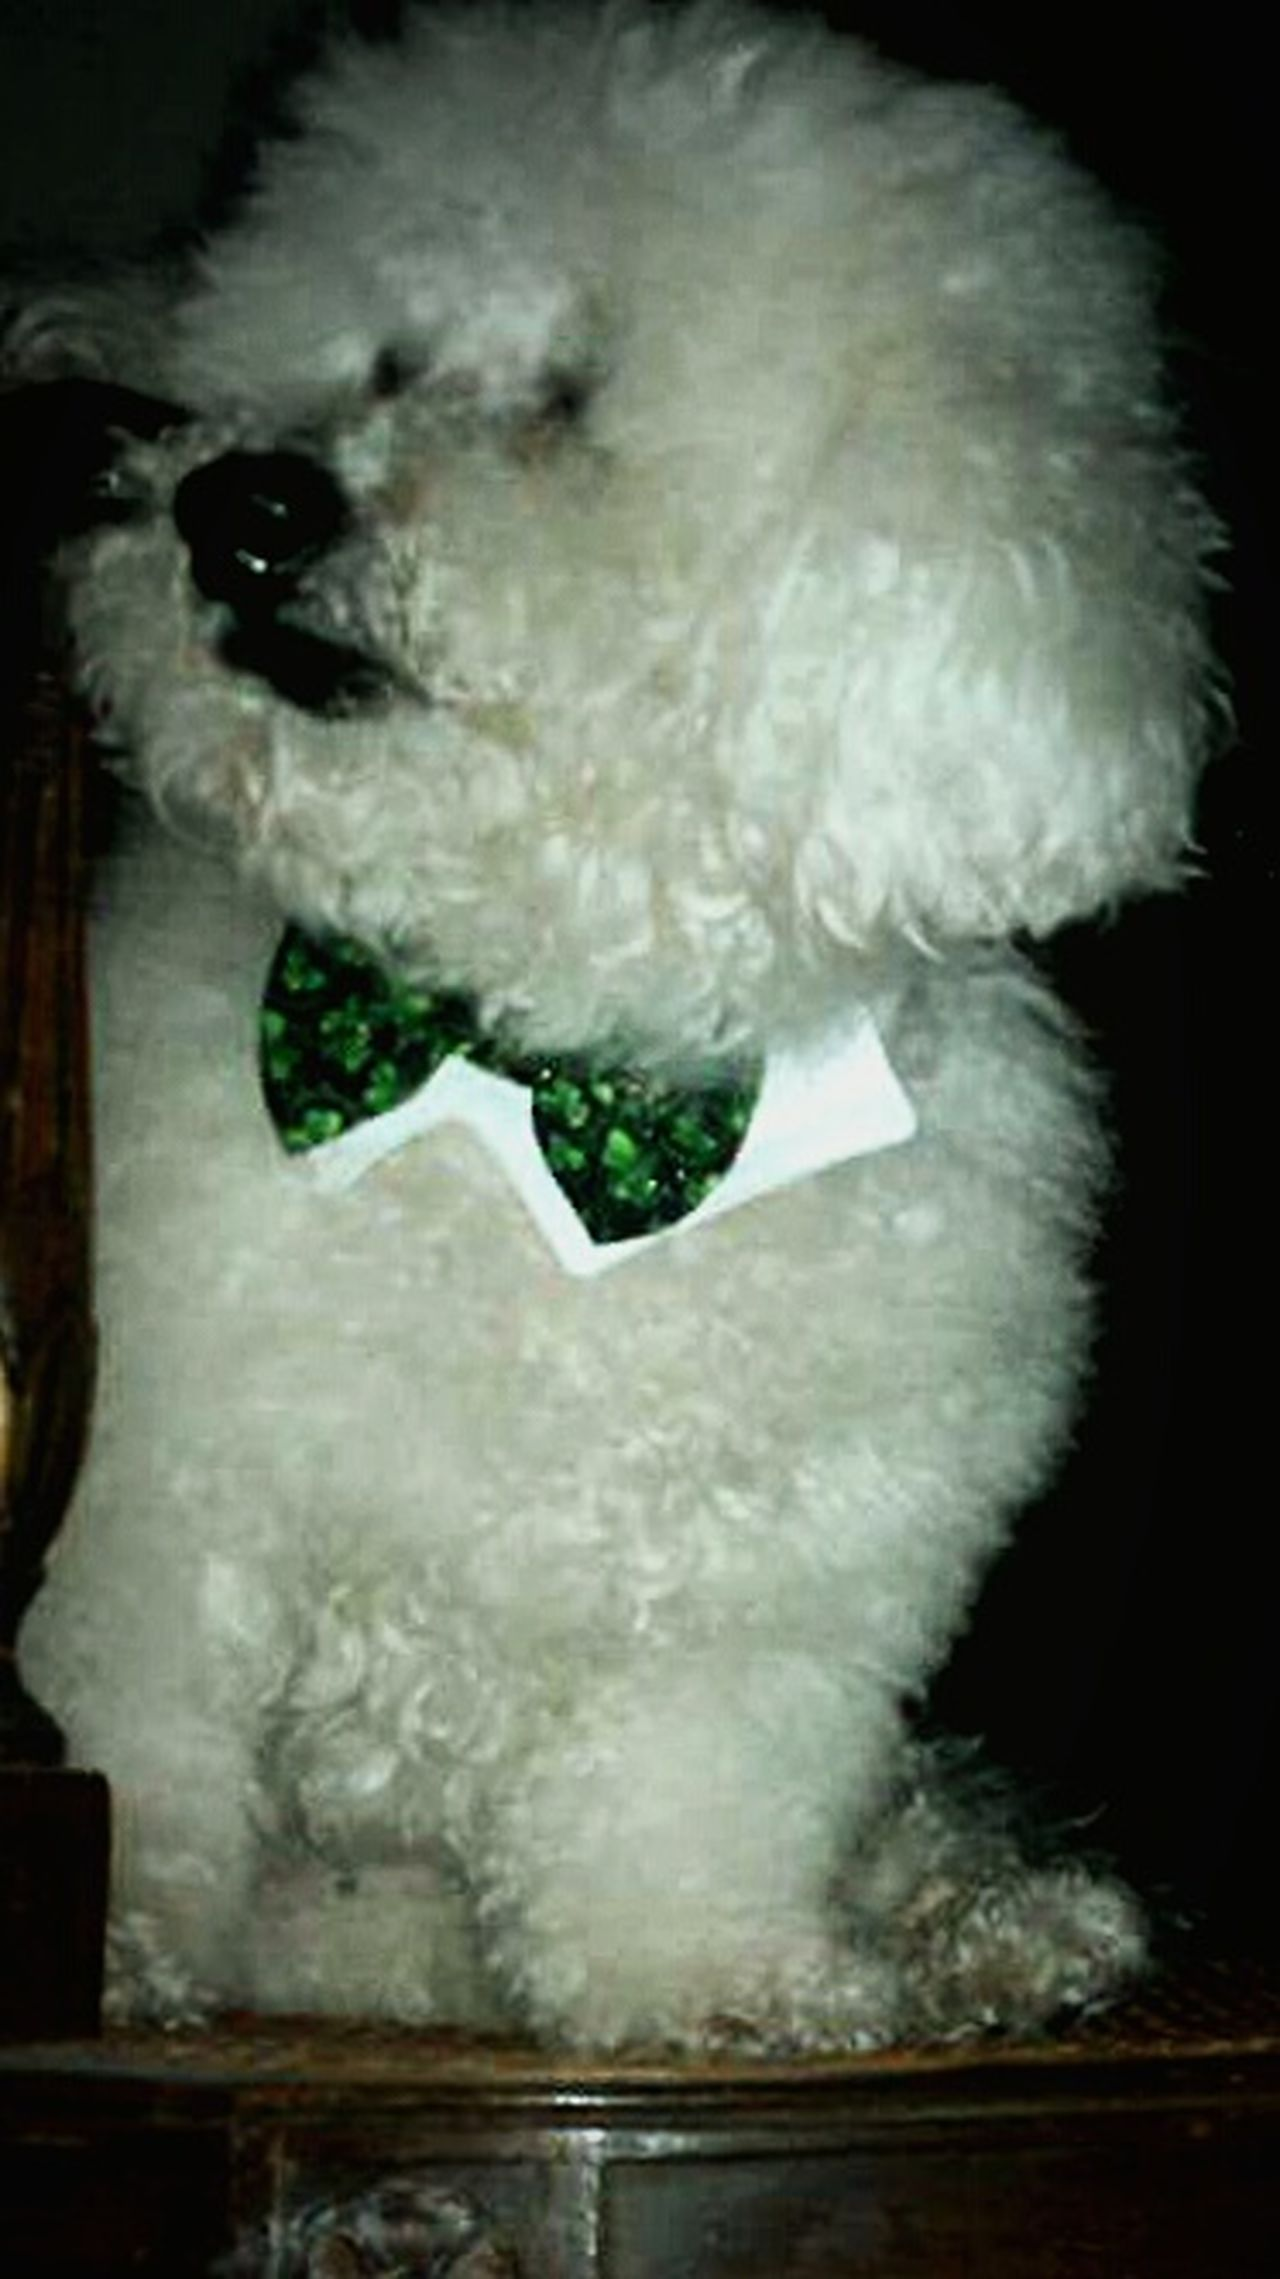 Bichon St. Patrick's Day Dog Love Bow Tie Green Tie American Life interior Photography eyeem Sir Henley, Prince Of Everything Eyeem Photography EyeEm Gallery Animal Photography Irwin Collection